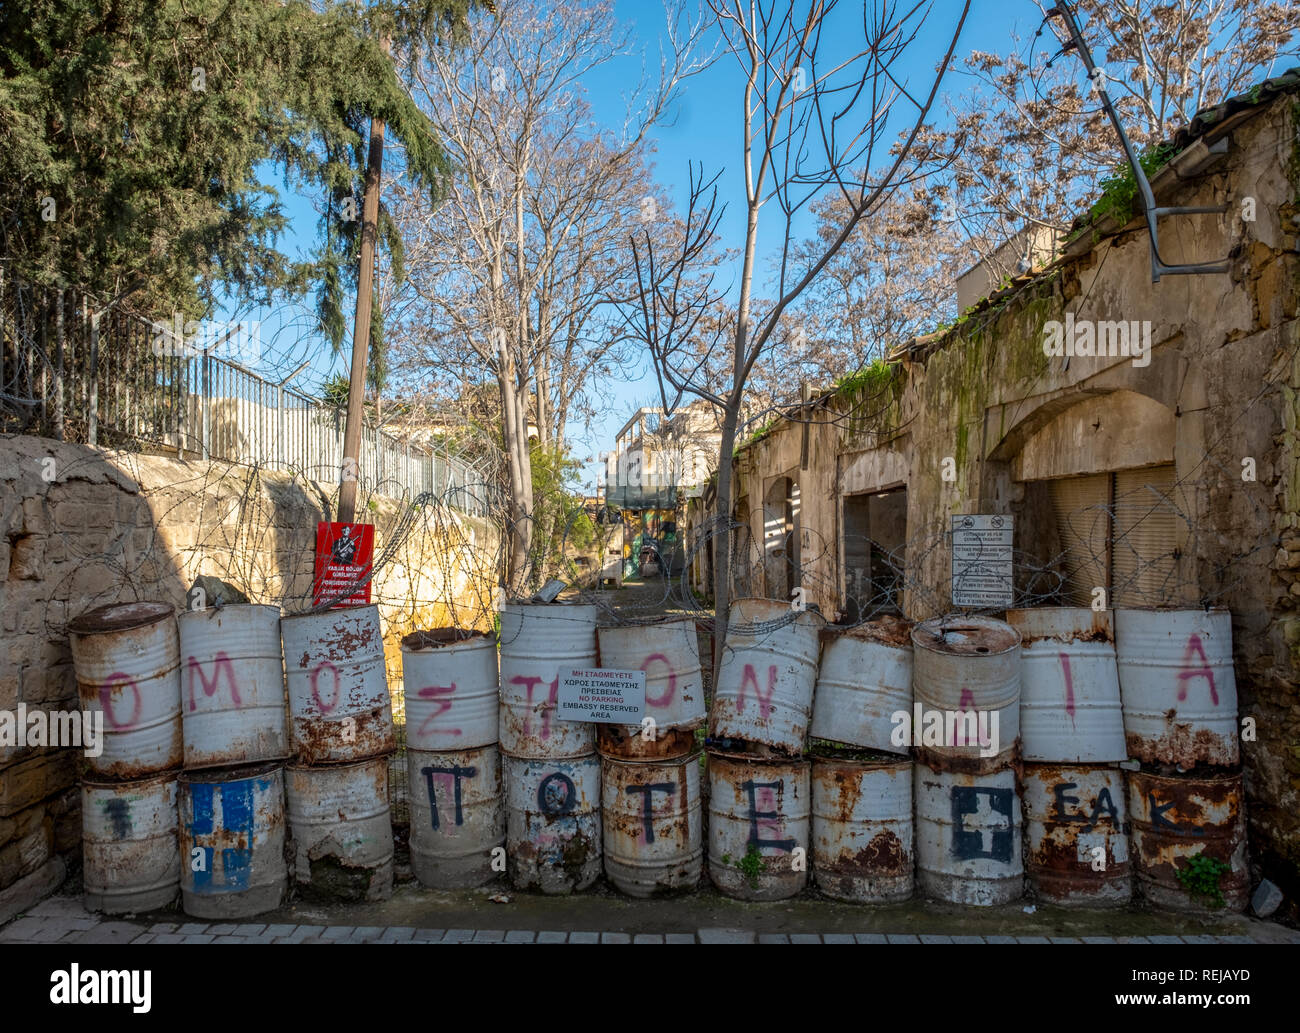 A barrier across a street in the centre of Nicosia, Cyprus which marks the buffer zone between the Turkish and Greek Cypriot sides of the divided city - Stock Image